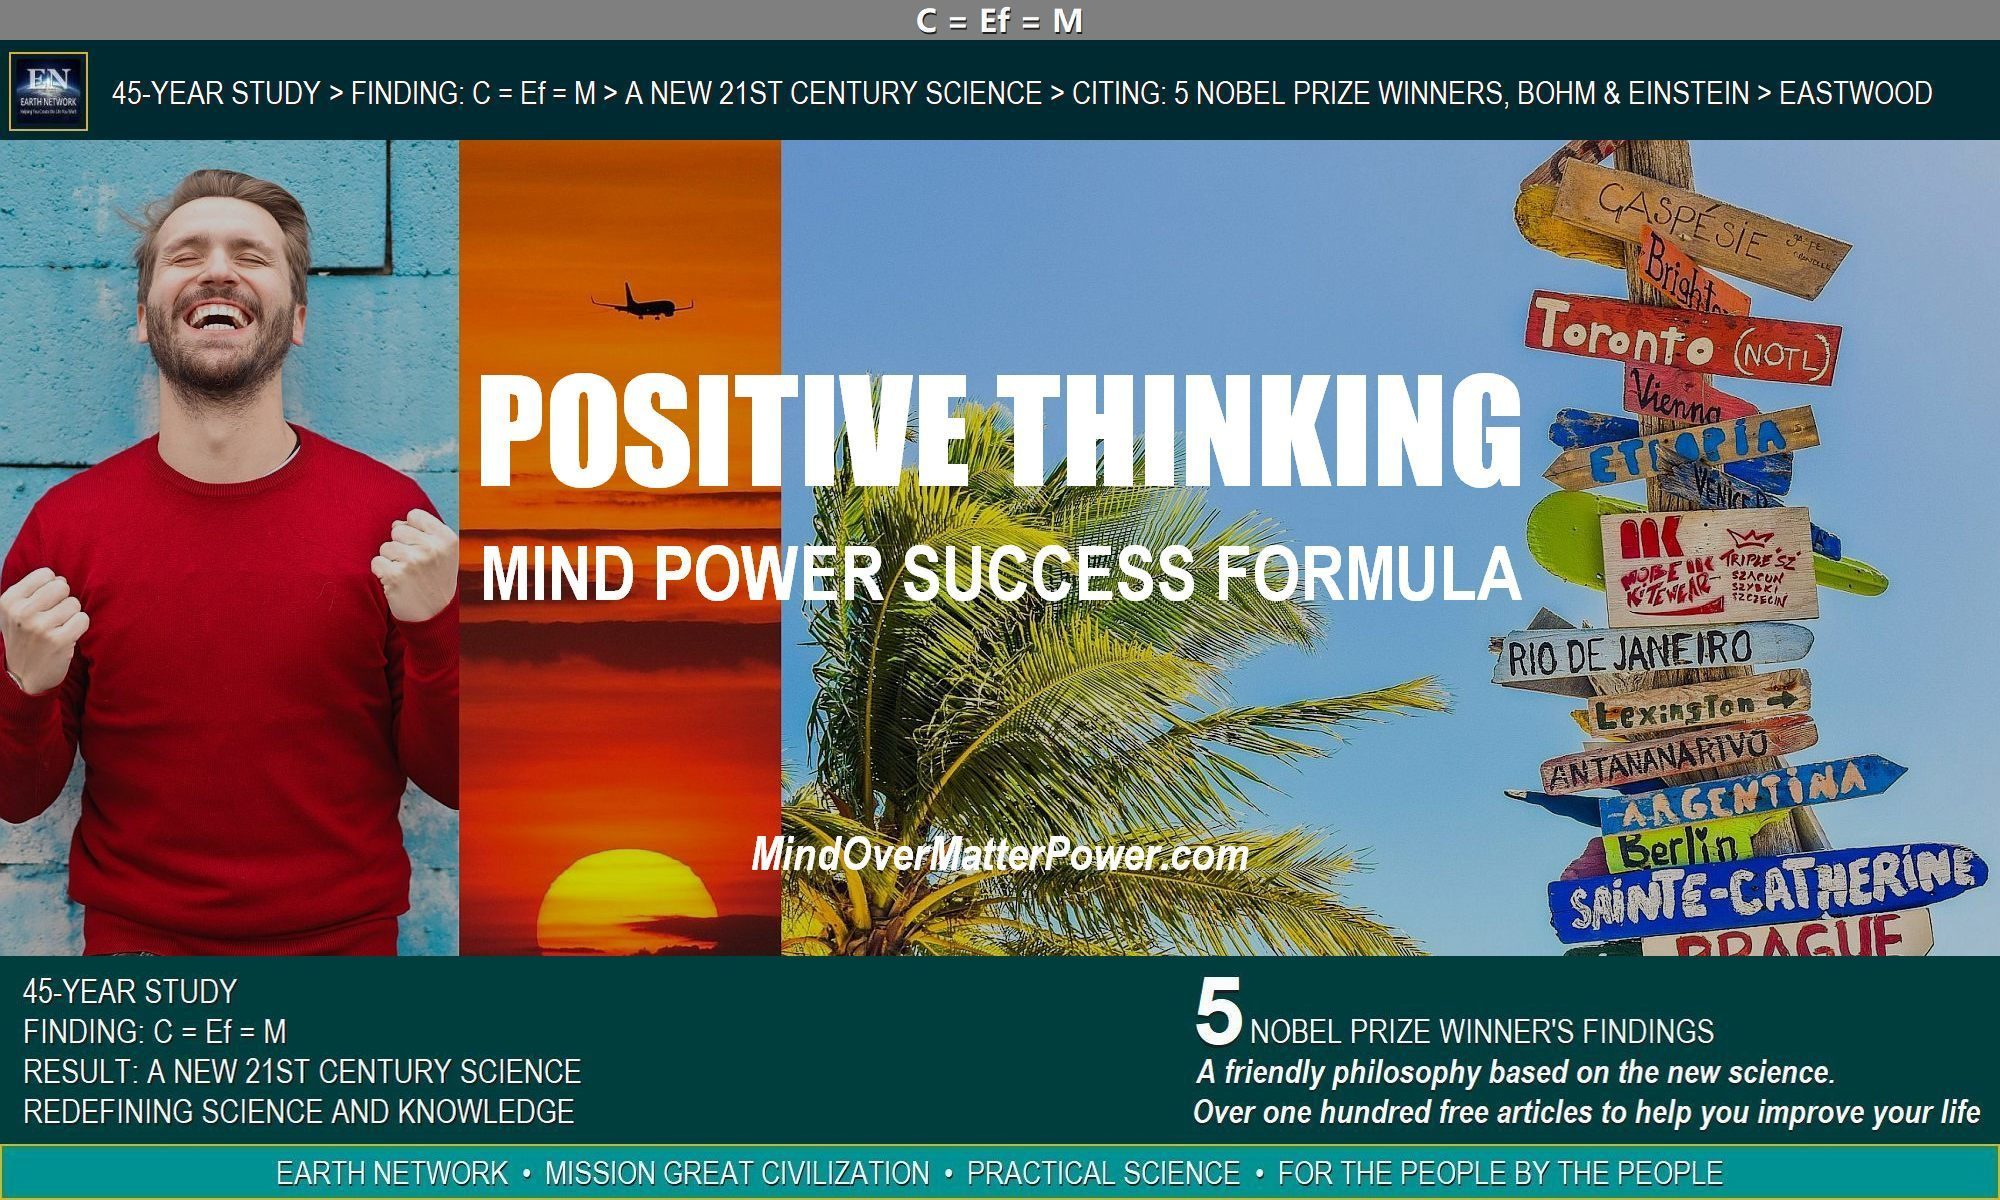 Psyched man depicts result of knowing how to apply mind over matter mind power principles with positive thoughts and emotions.